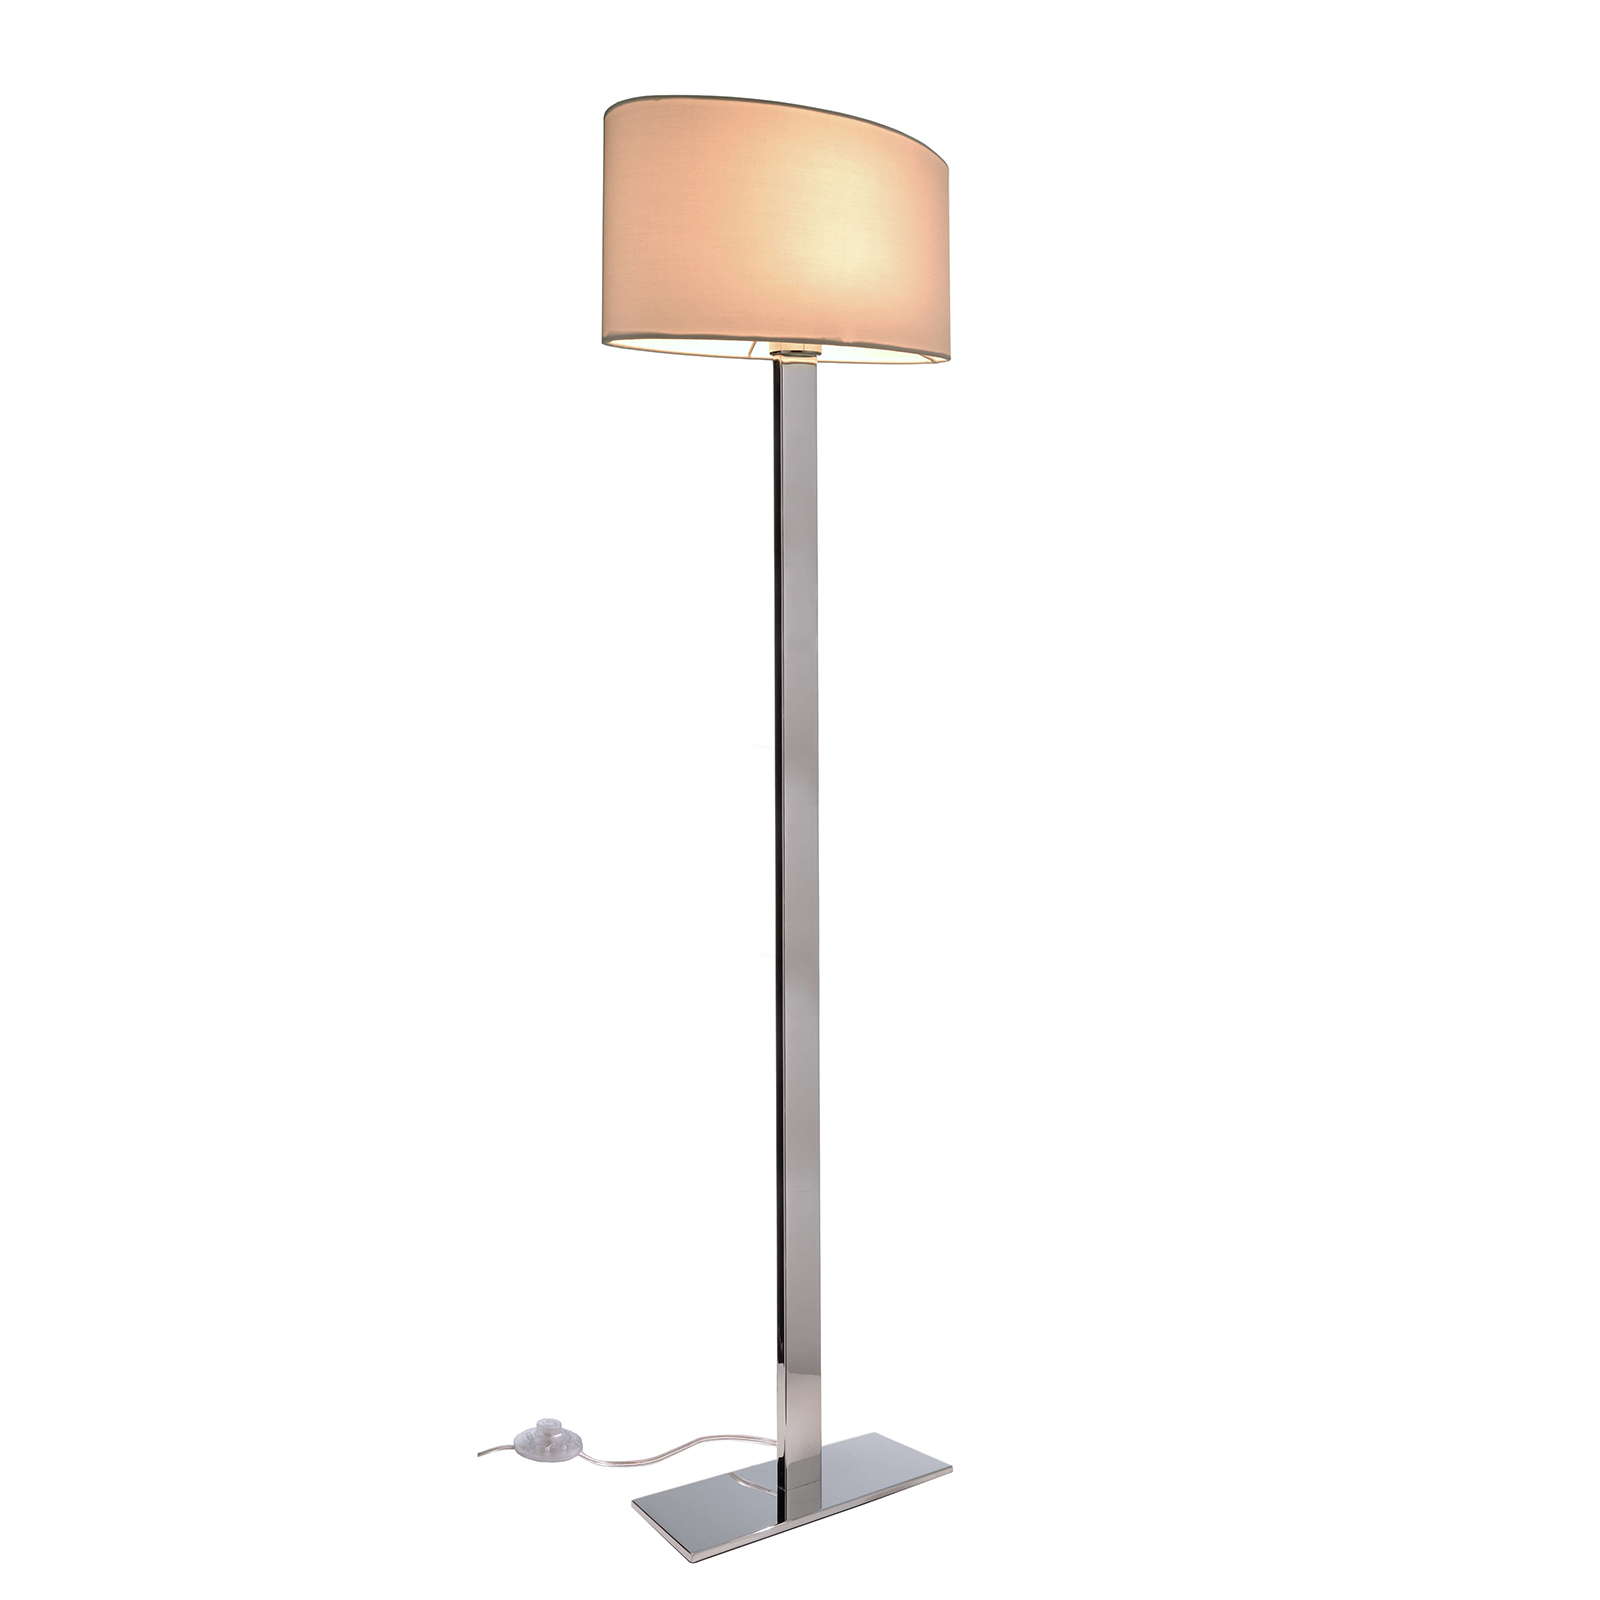 LED lamp modern light salon office studio floor lamp floor 160cm E27 230V